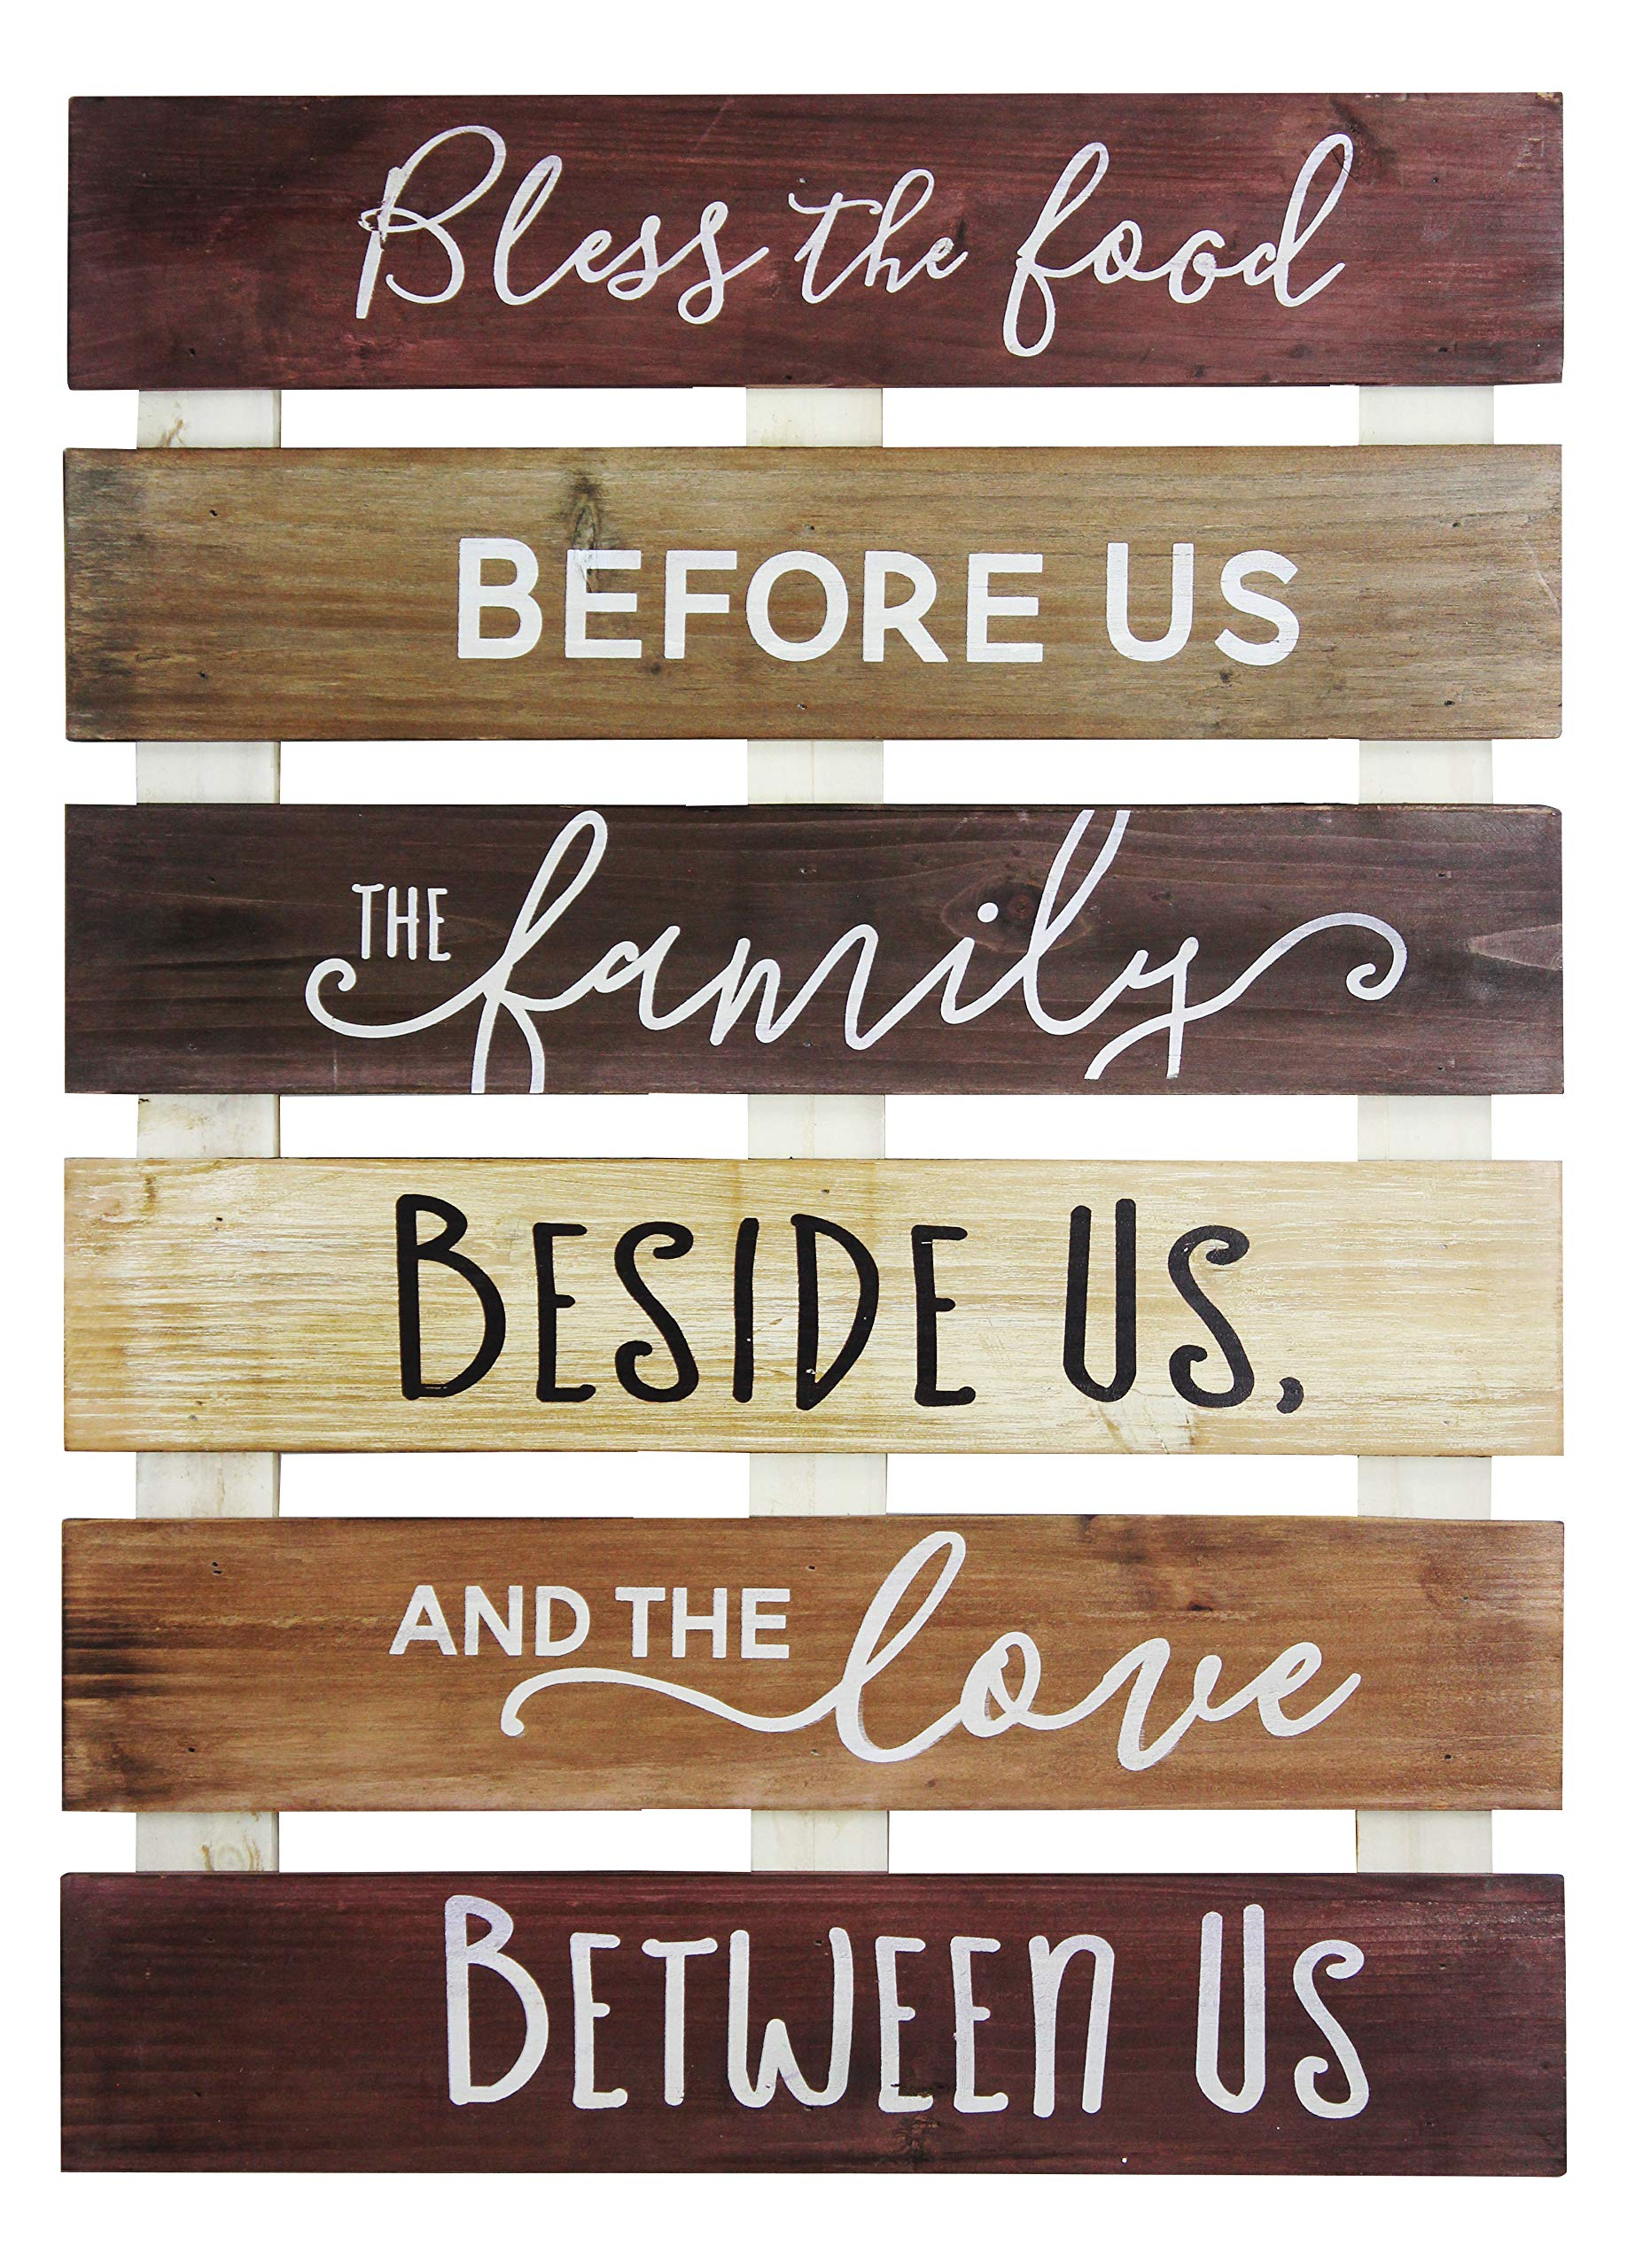 Vintage Rustic Farmhouse Wall Home Decor Sign For Kitchen, Living Room, Dining Room, Bedroom or Bathroom – Bless The…